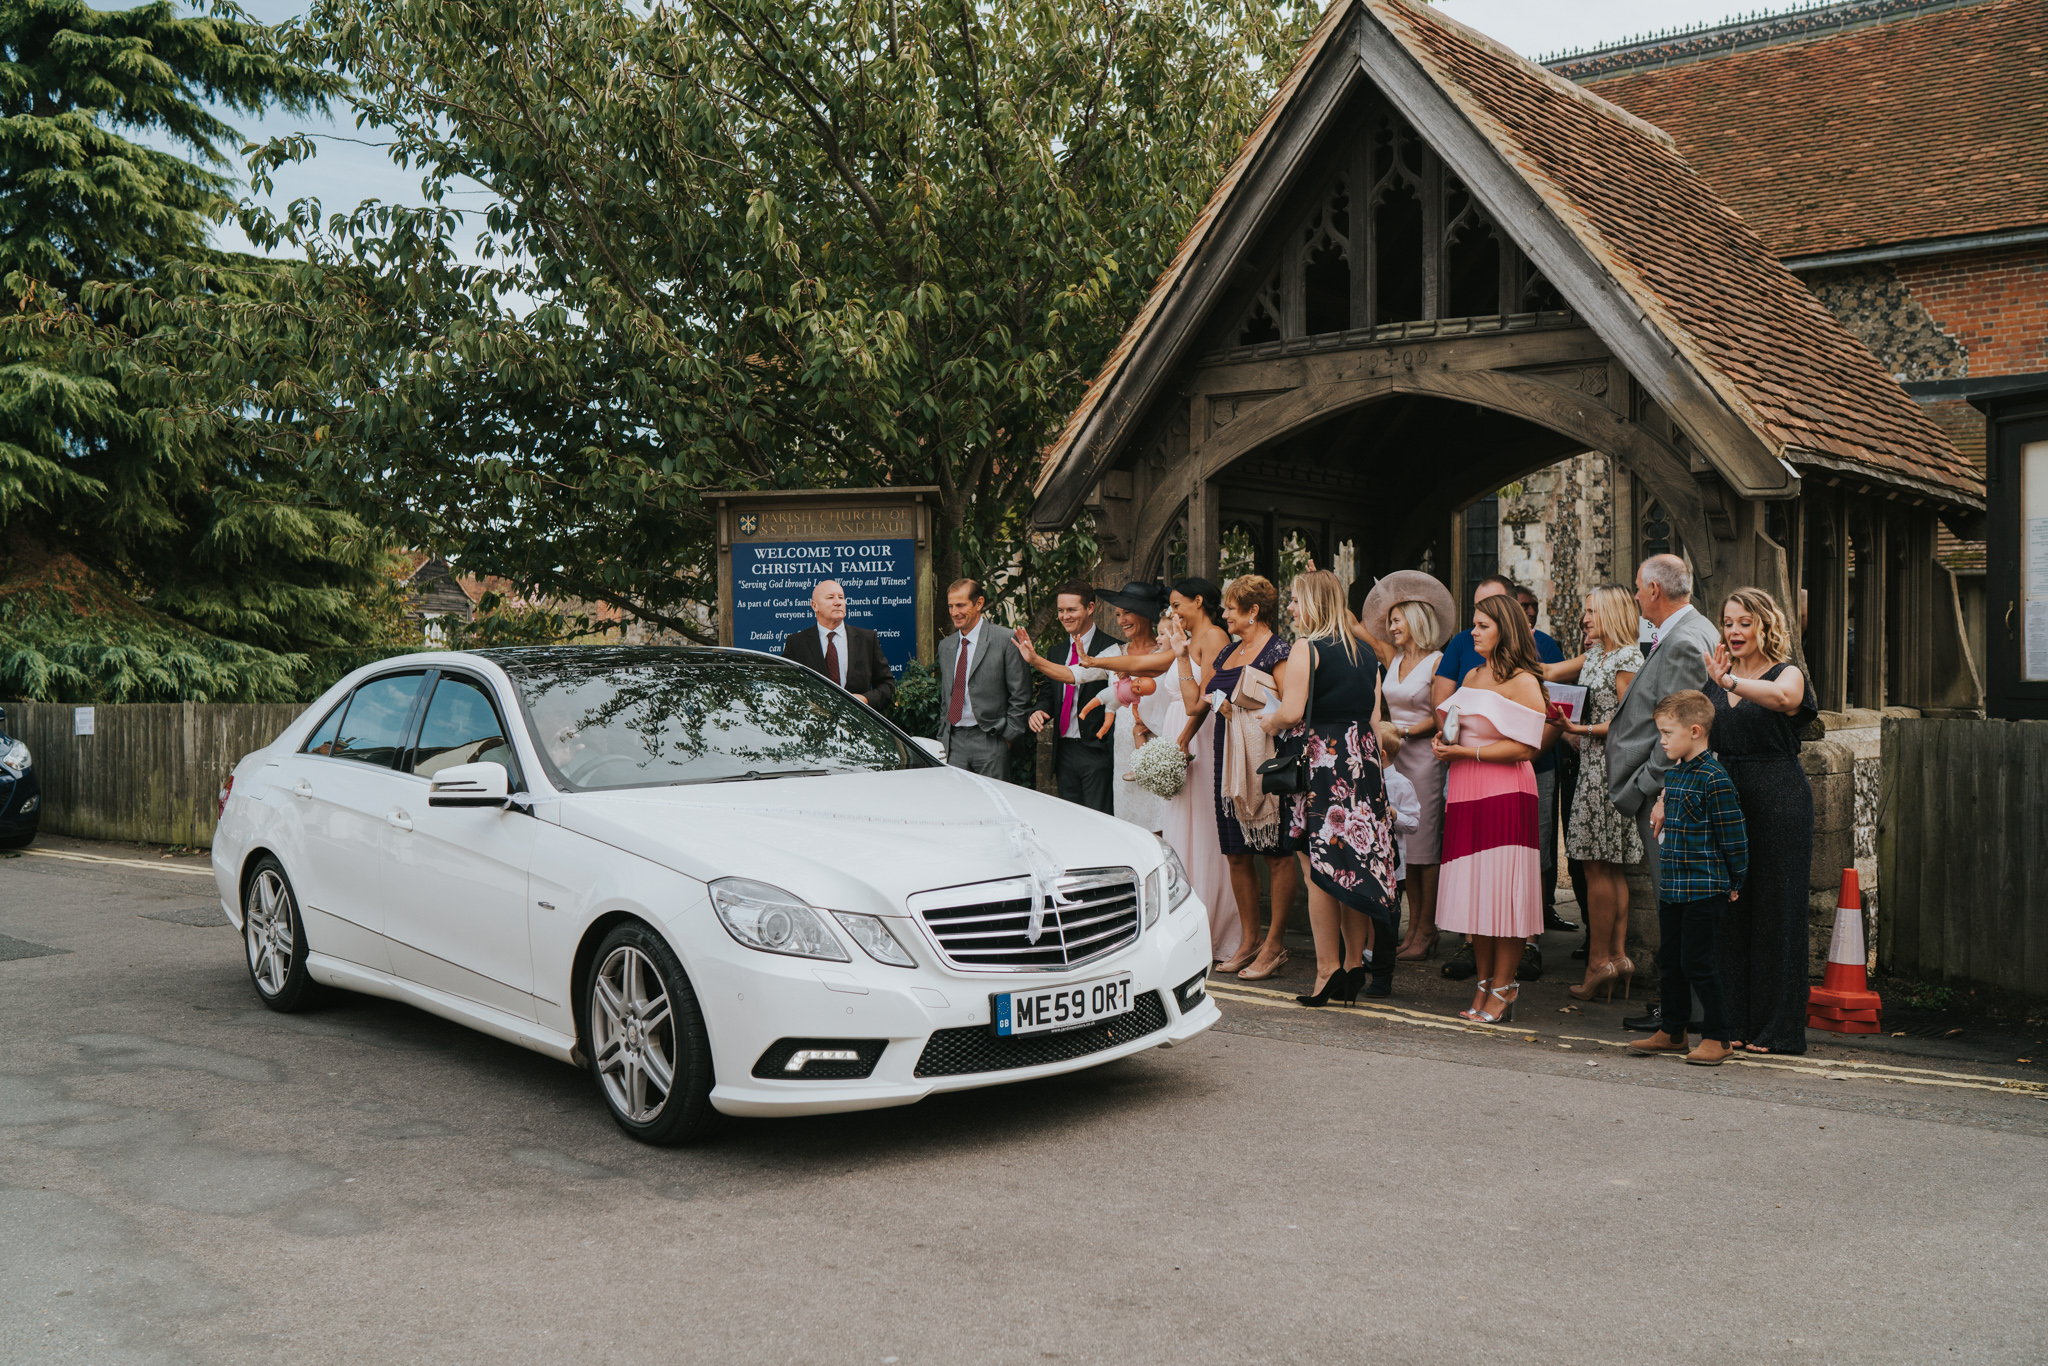 intimate-english-church-wedding-sarah-alex-colchester-essex-grace-elizabeth-colchester-essex-alternative-wedding-lifestyle-photographer-essex-suffolk-norfolk-devon (74 of 92).jpg